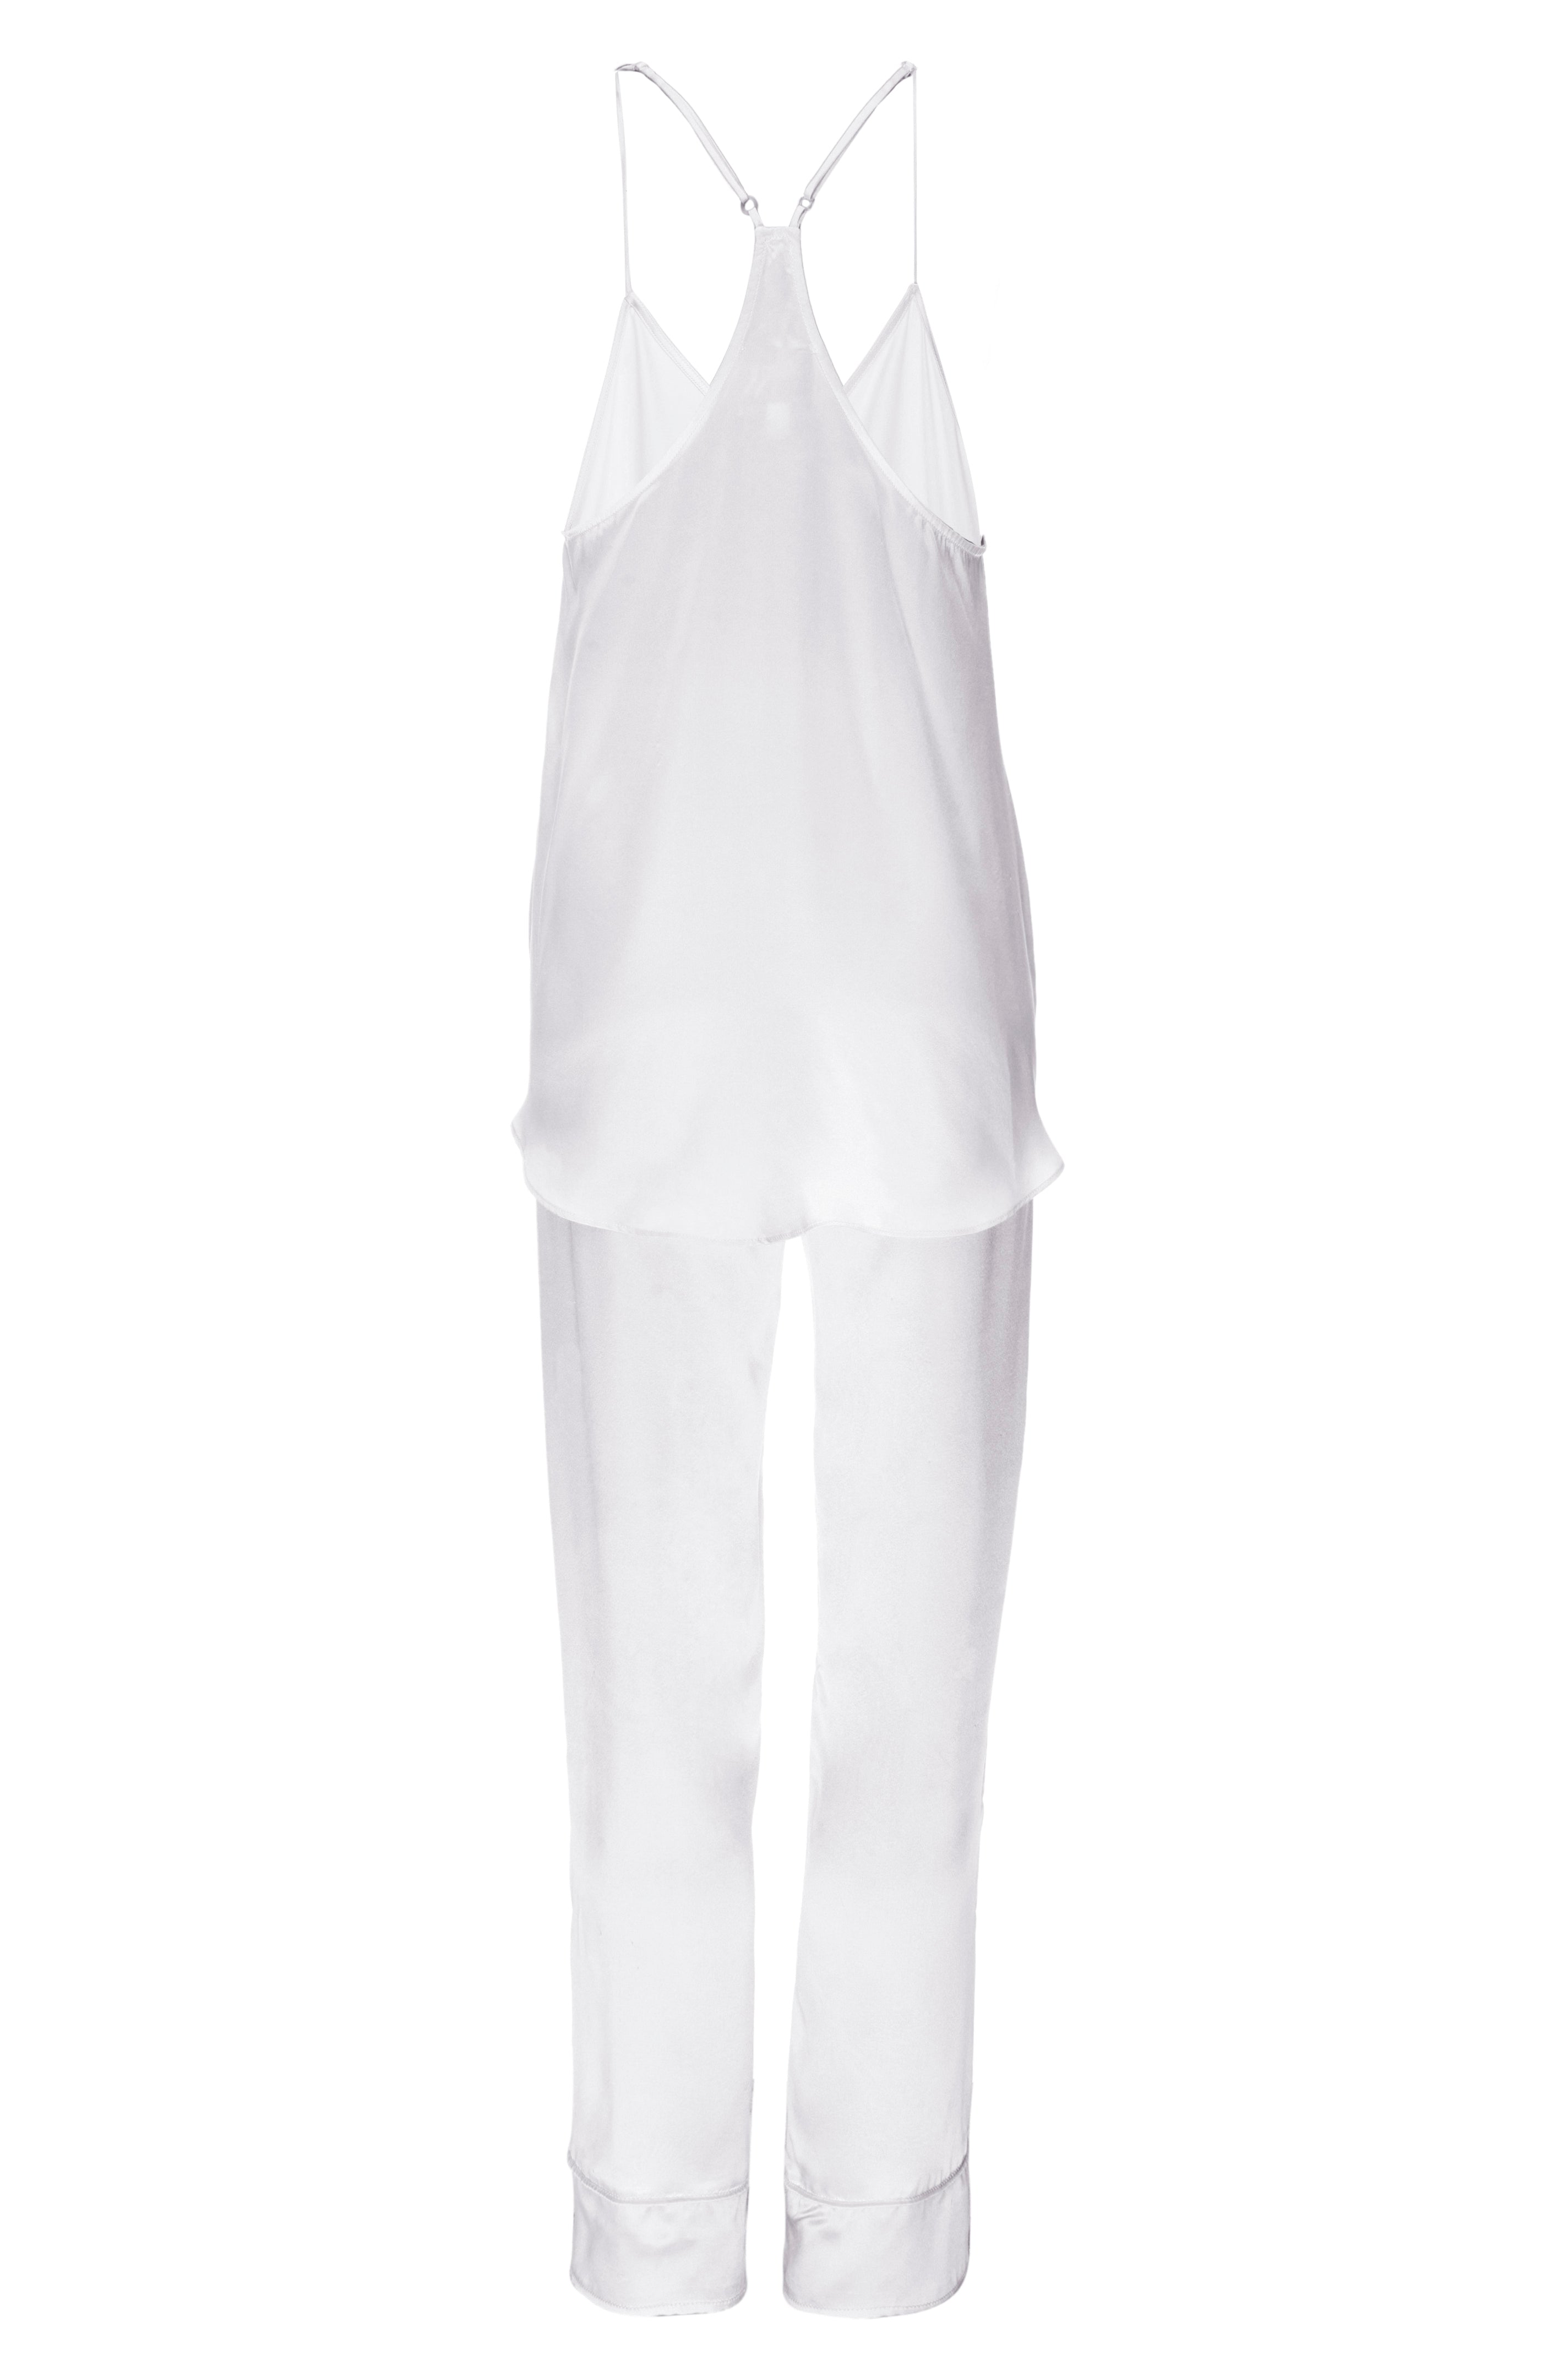 NEW: Tank and Pant Set in 'White' Silk Charmeuse